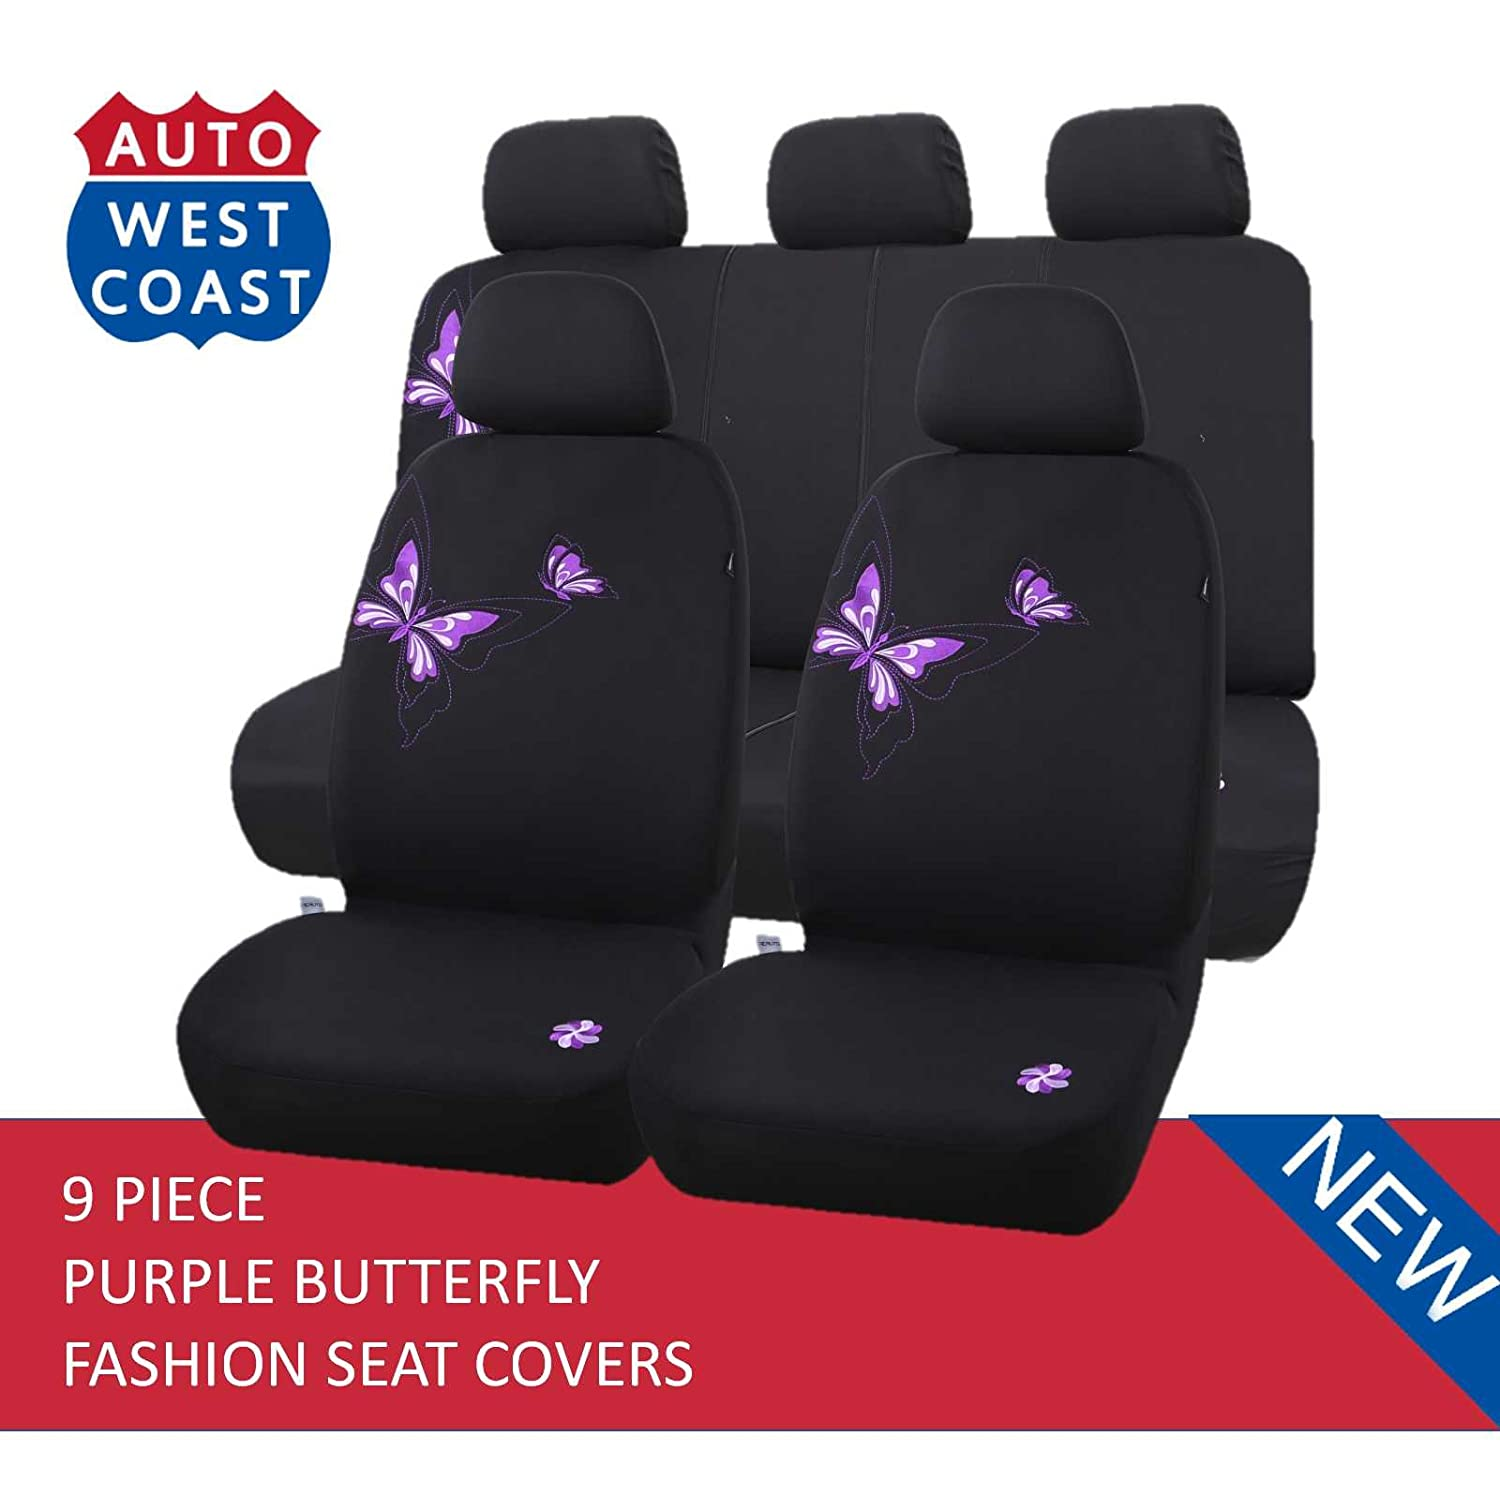 Fantastic Amazon Com West Coast Auto Car Seat Covers Set For Cars Pdpeps Interior Chair Design Pdpepsorg